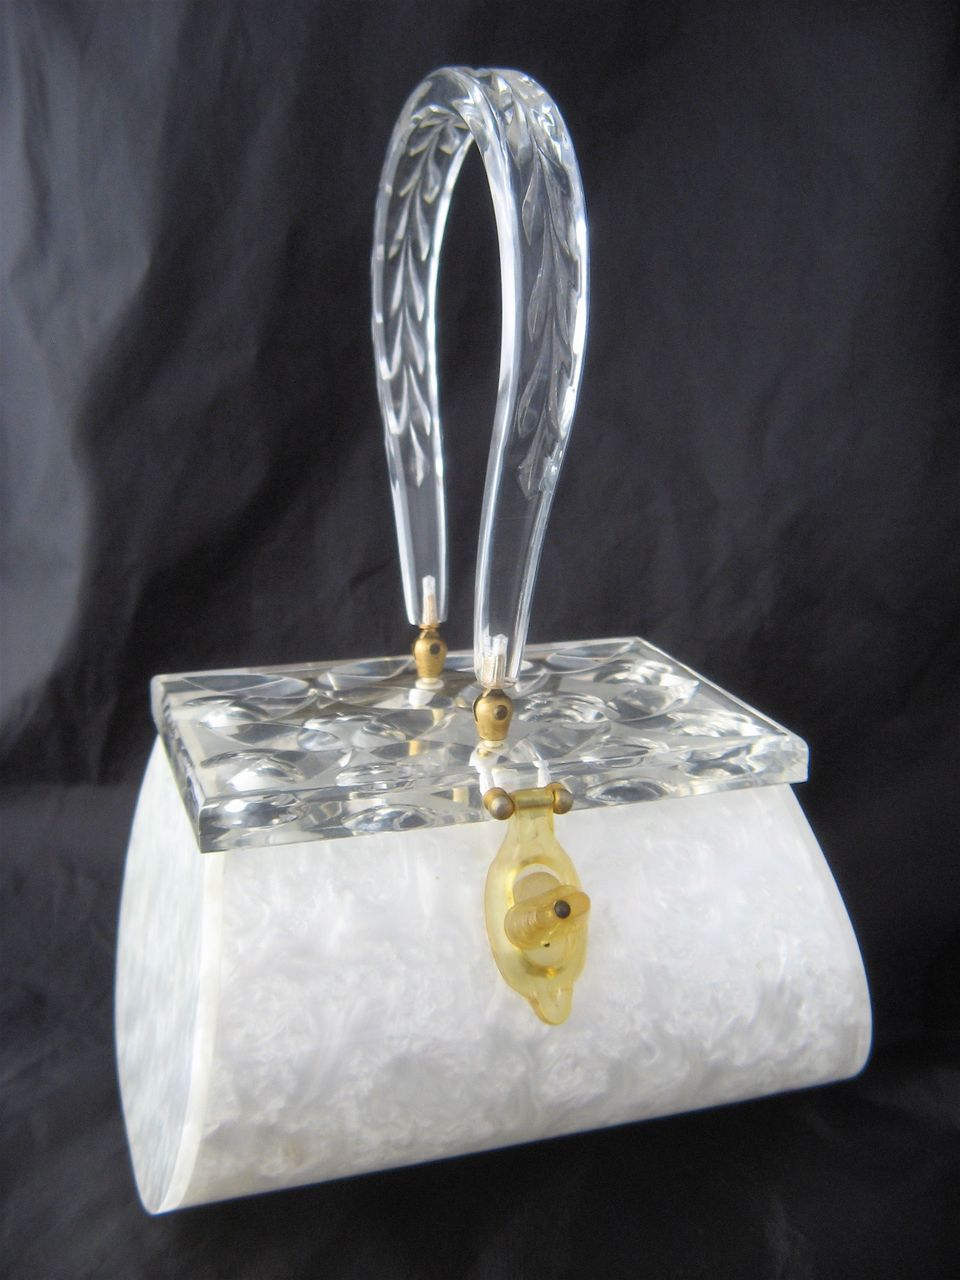 1950s Rialto NY Pearlized White & Clear Lucite Handbag Purse - Vintage Lucite Purses on Ruby Lane $149.00